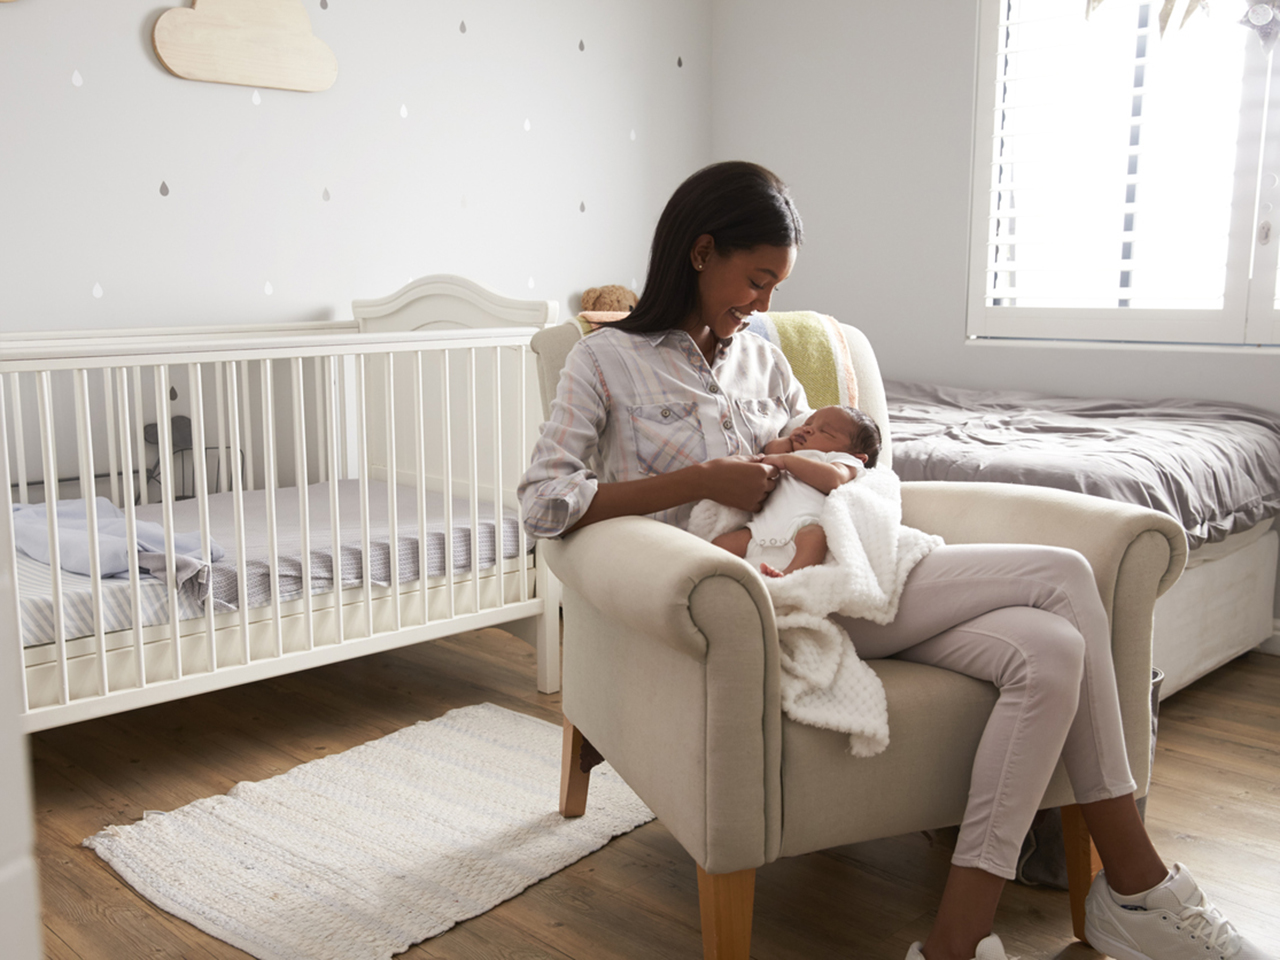 Mother Home from Hospital With Newborn Baby In Nursery